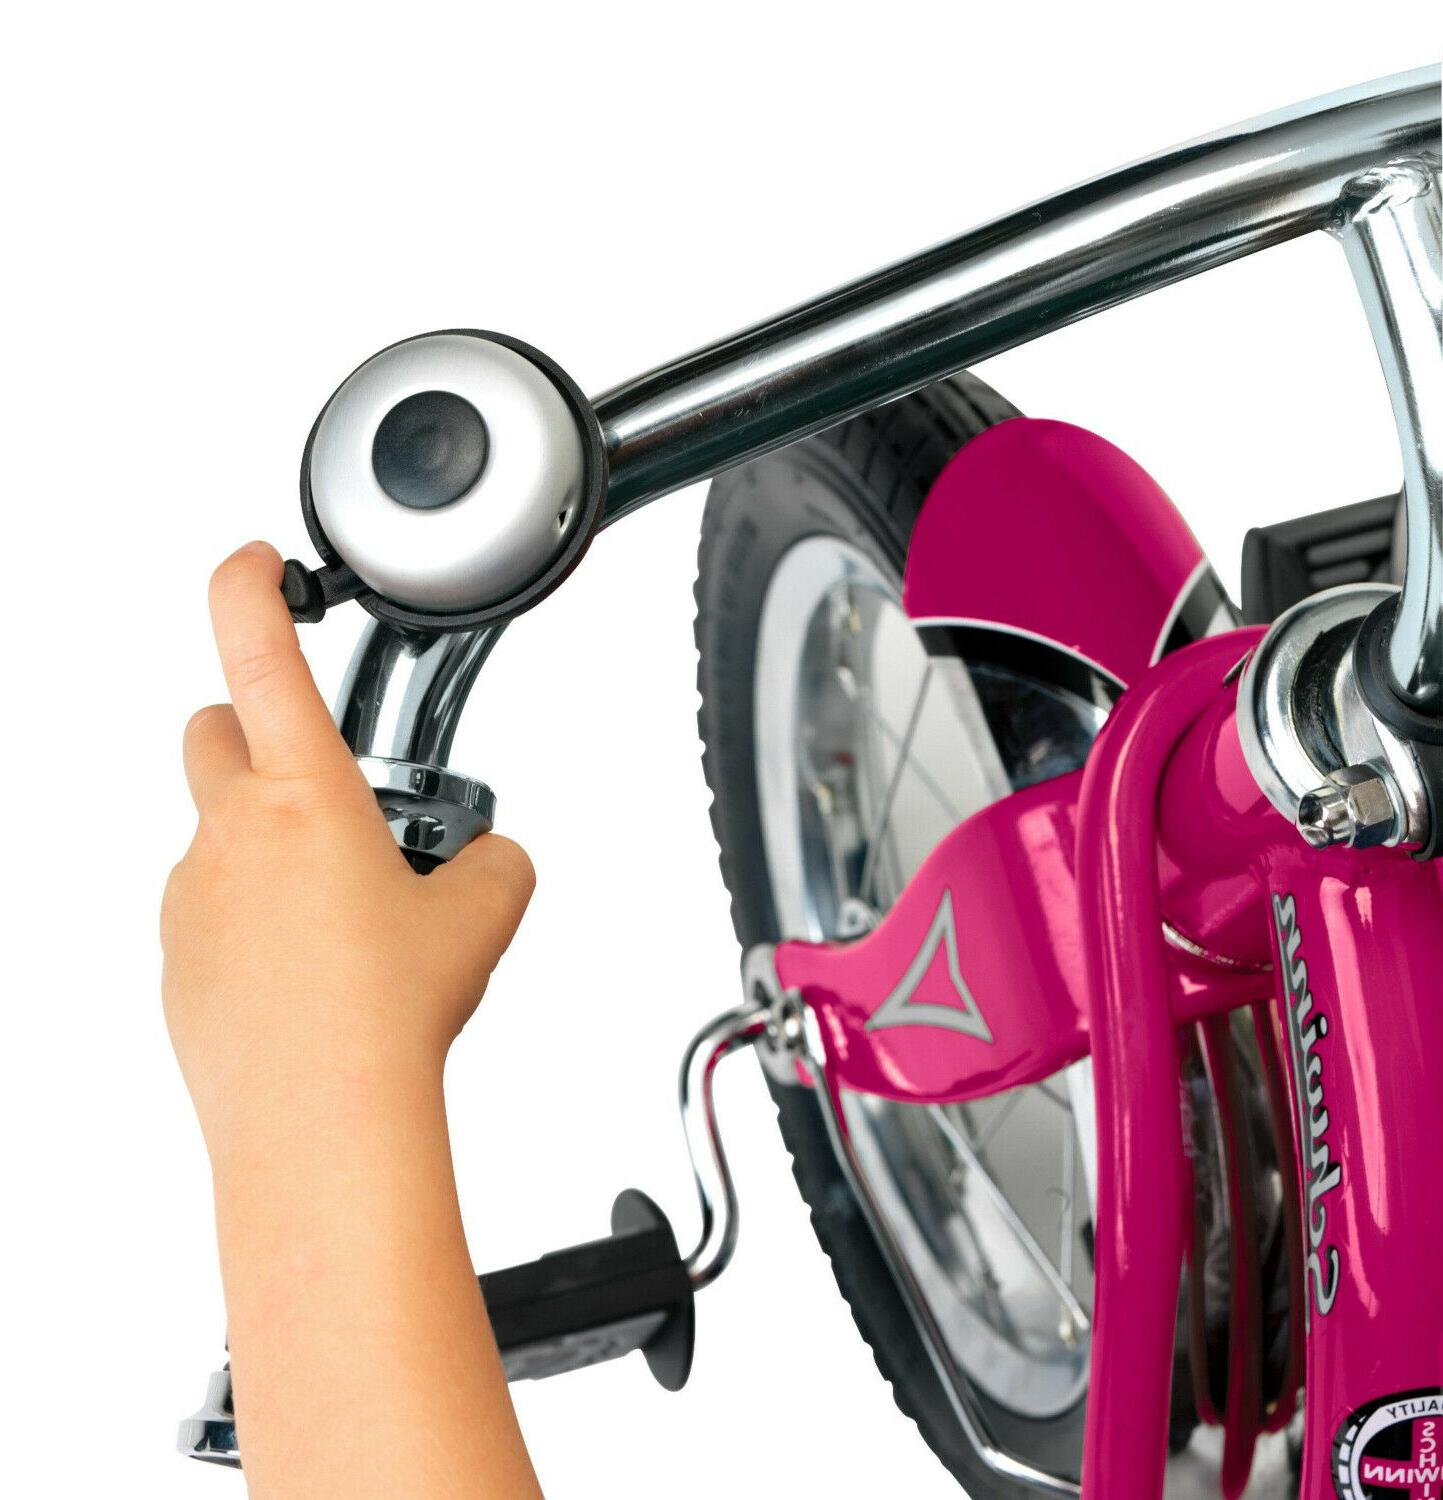 Schwinn Roadster Tricycle Retro-Style 12-Inch Front Pink Tires